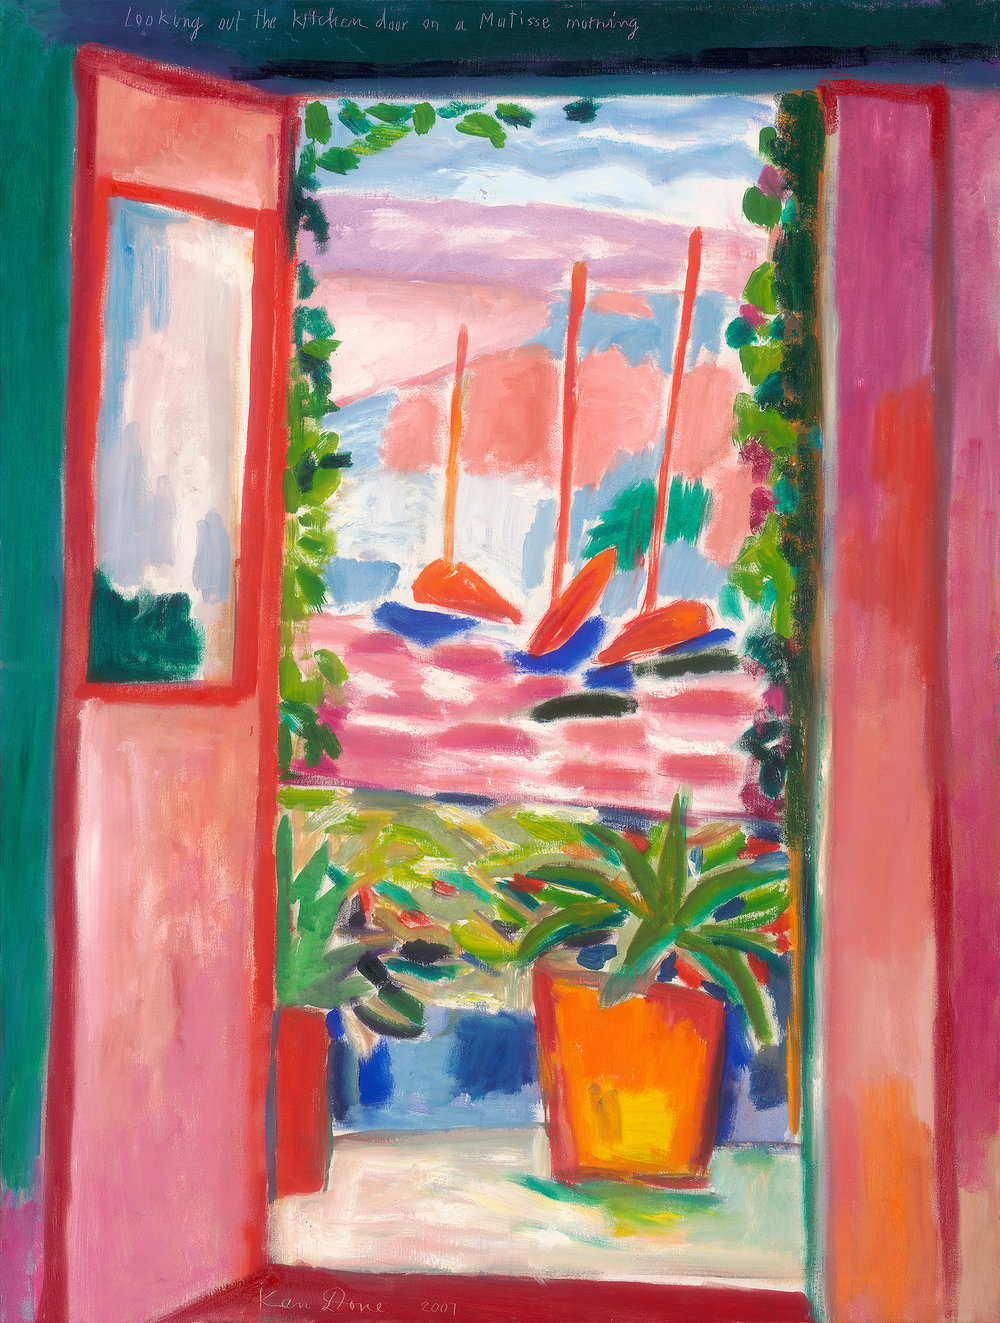 Looking out the kitchen door on a Matisse morning, 2007, acrylic on canvas, 122 x 91 cm